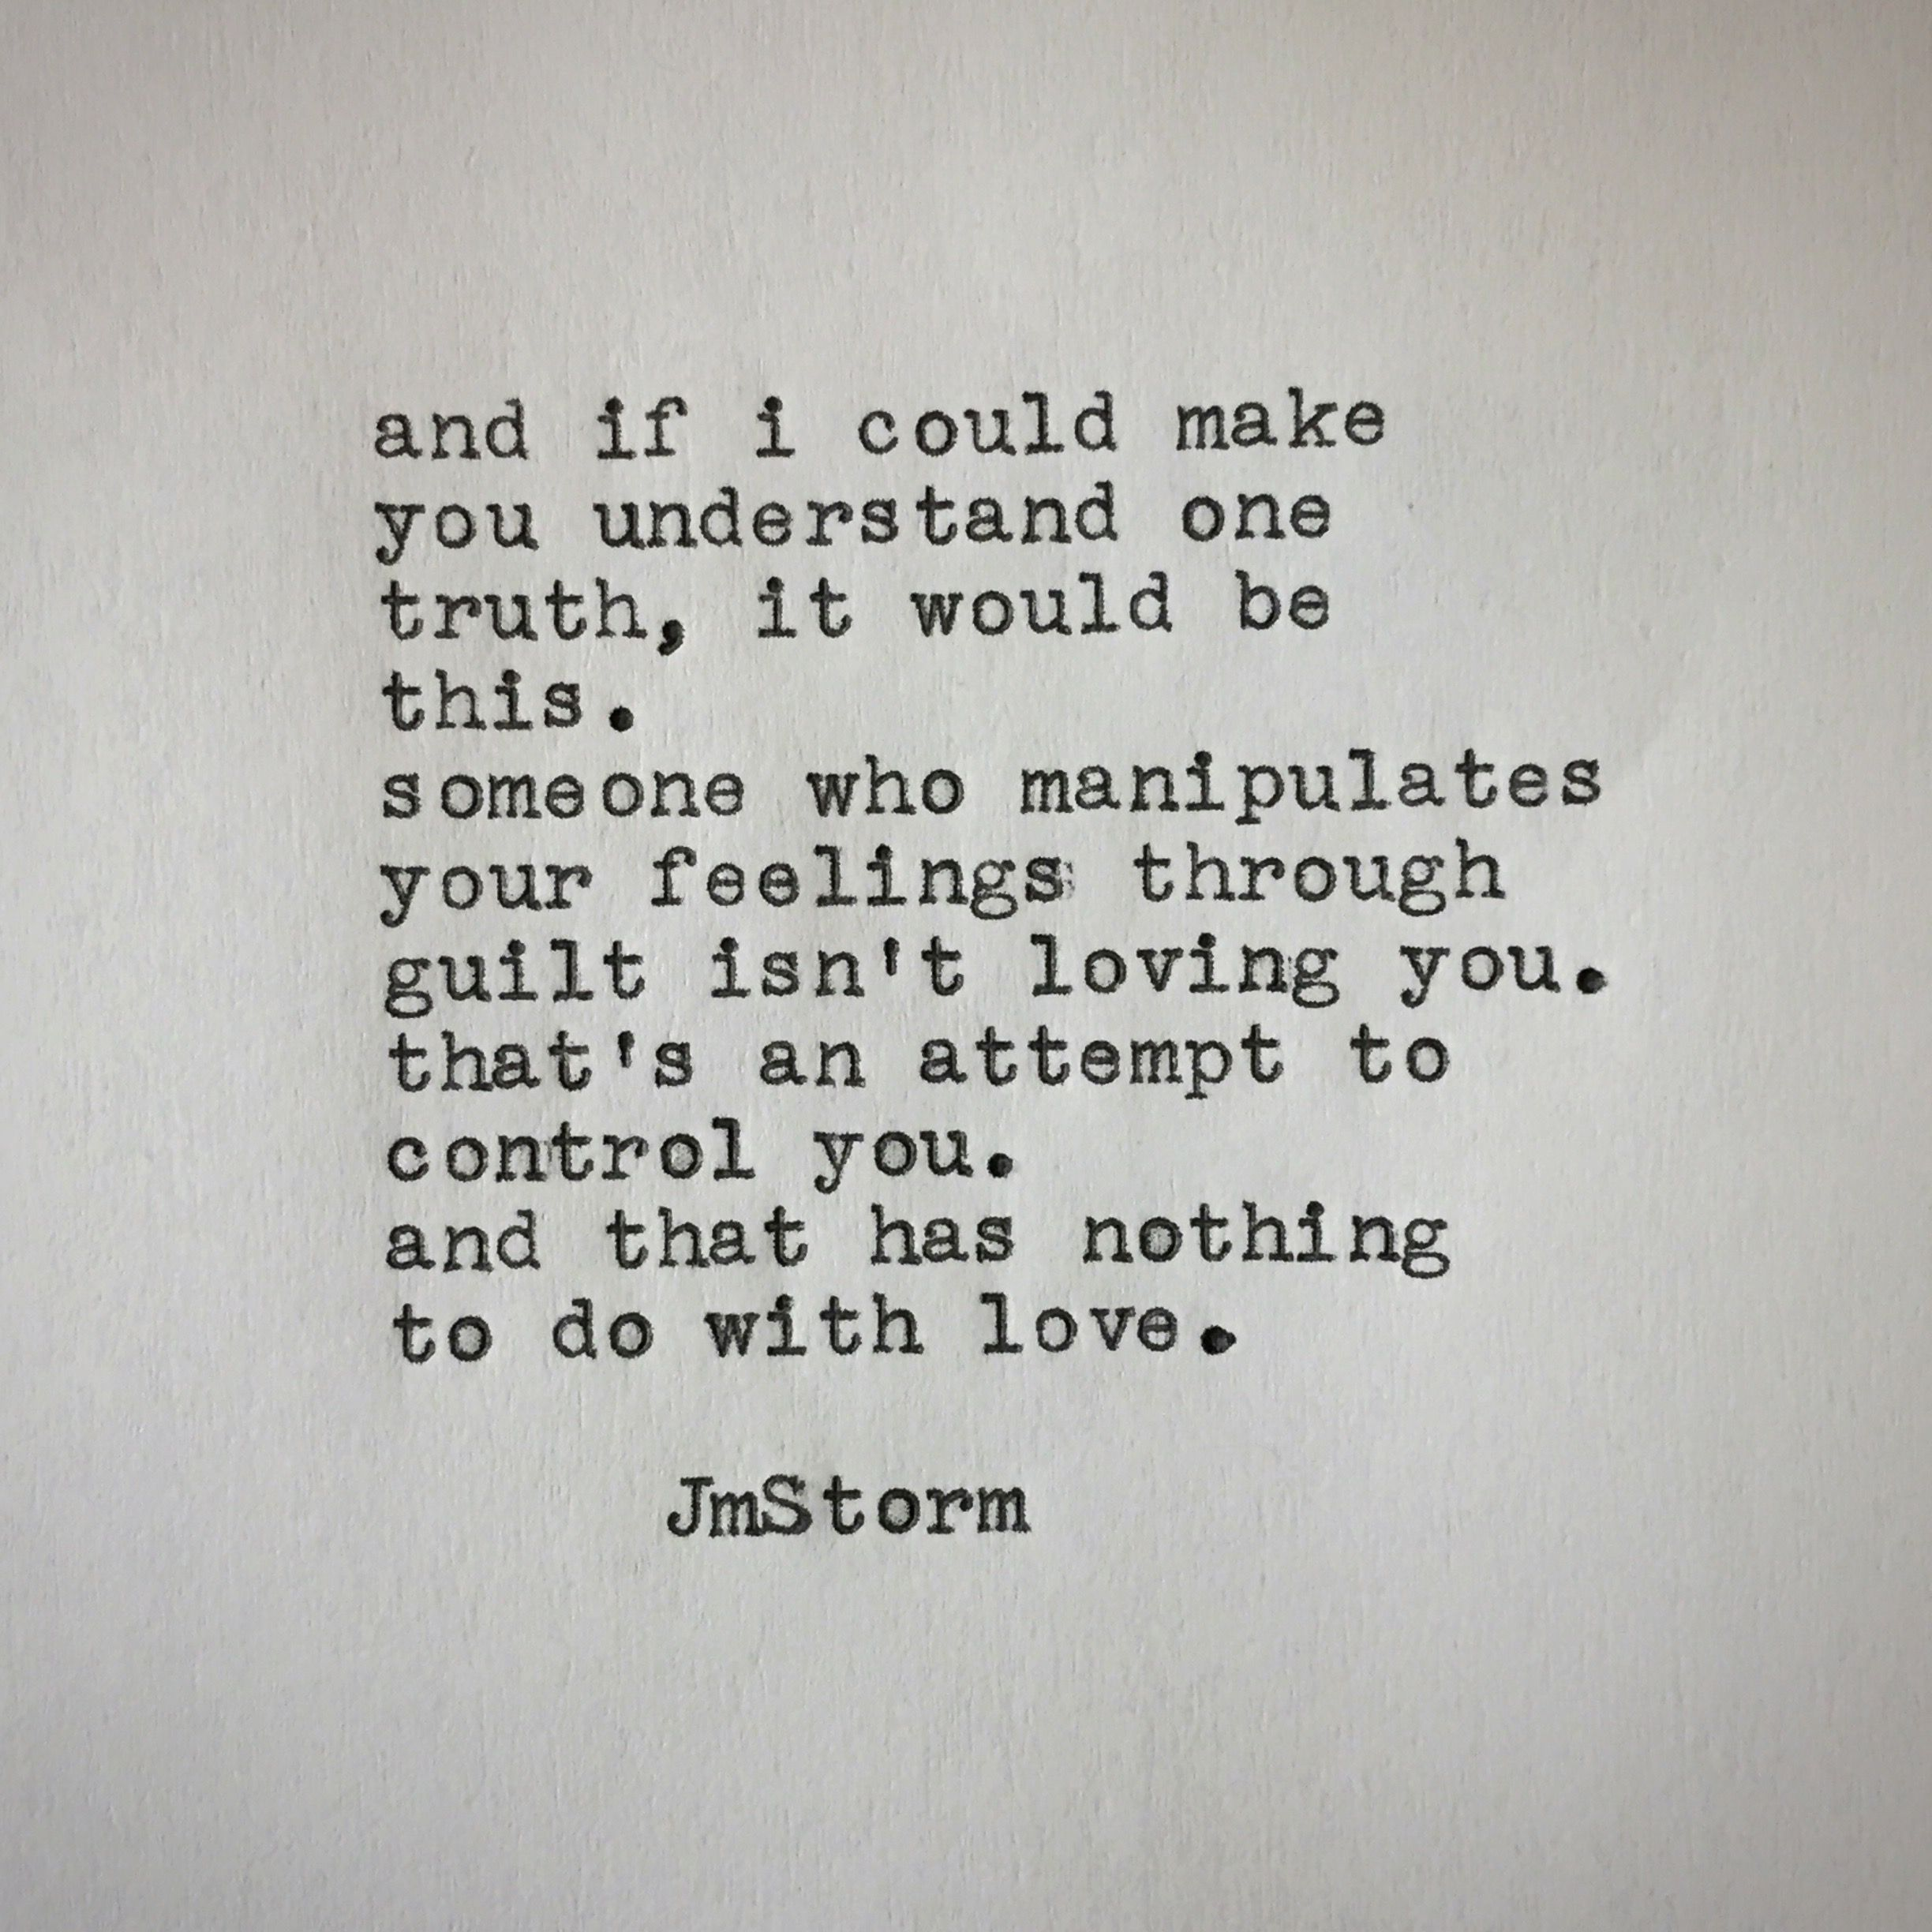 Manipulation Quotes Manipulation | JmStorm | Quotes, Words, Love Quotes Manipulation Quotes